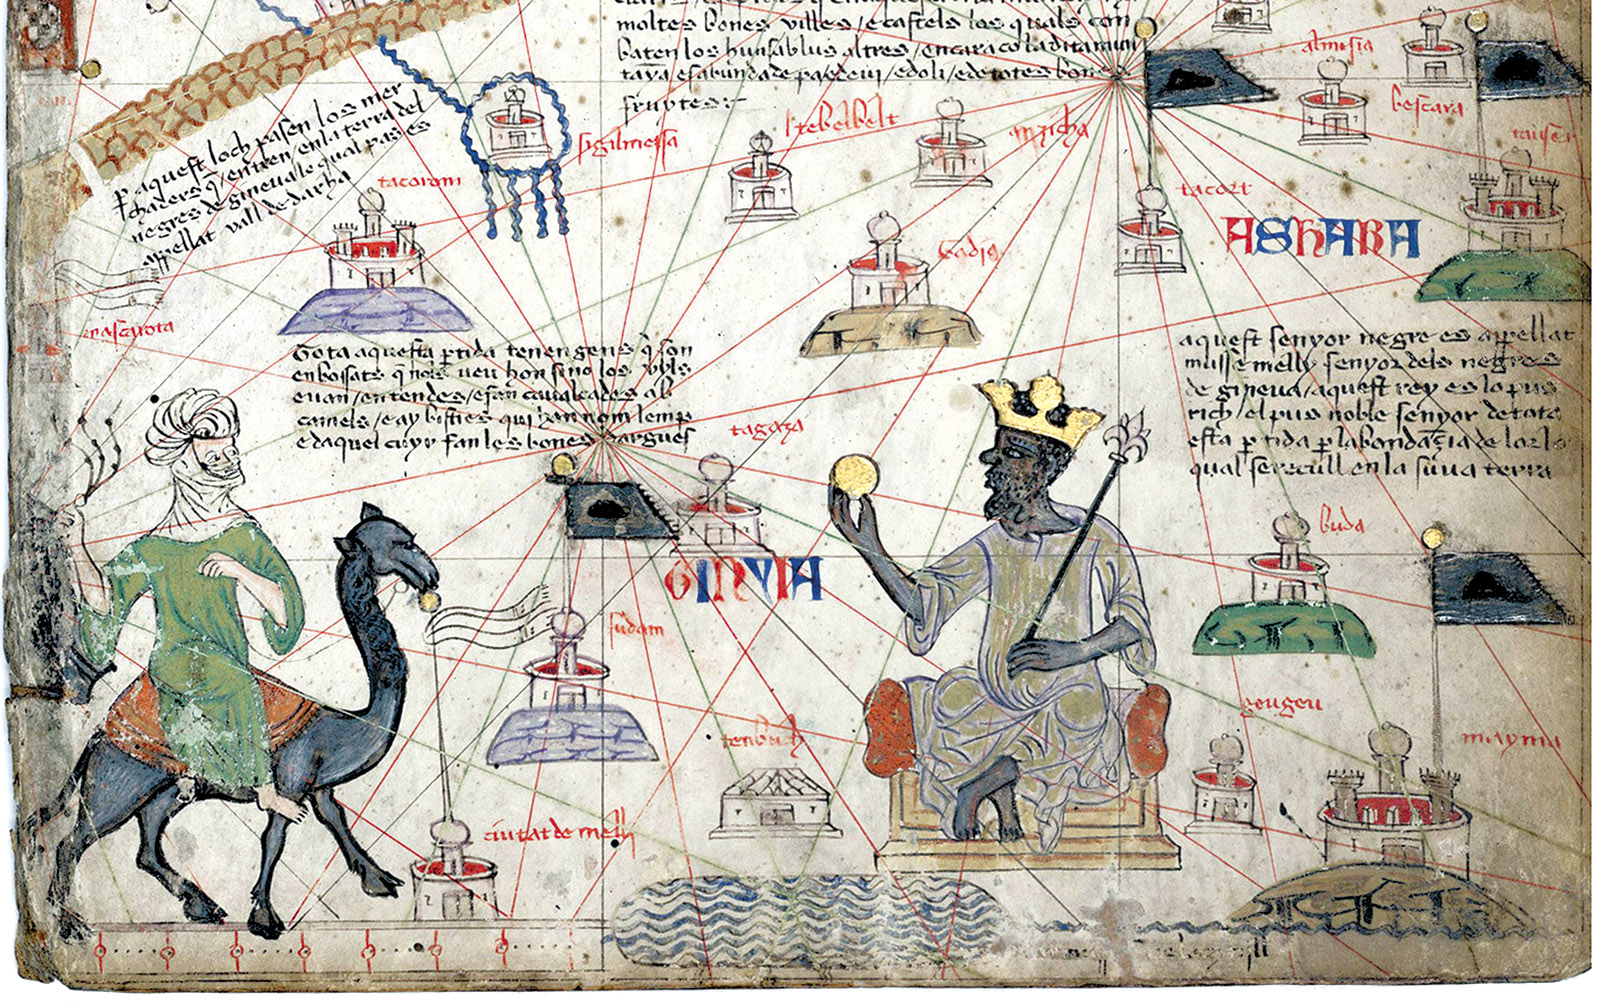 Mansa Musa, the king of Mali, approached by a Berber on camelback by Abraham Cresques, 1375